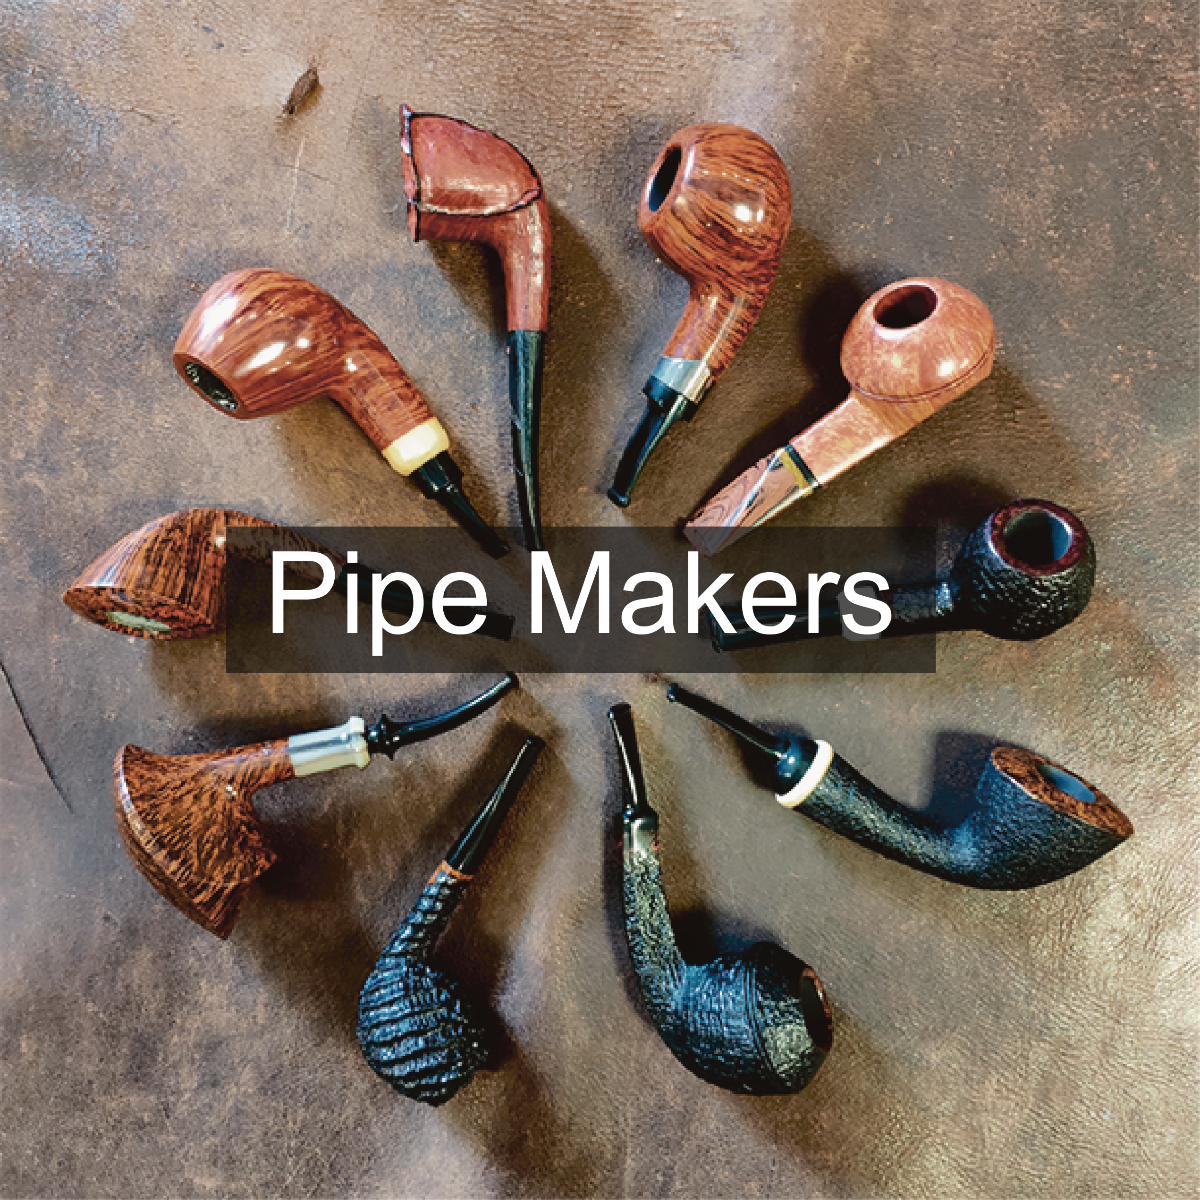 Pipes from different pipe makers